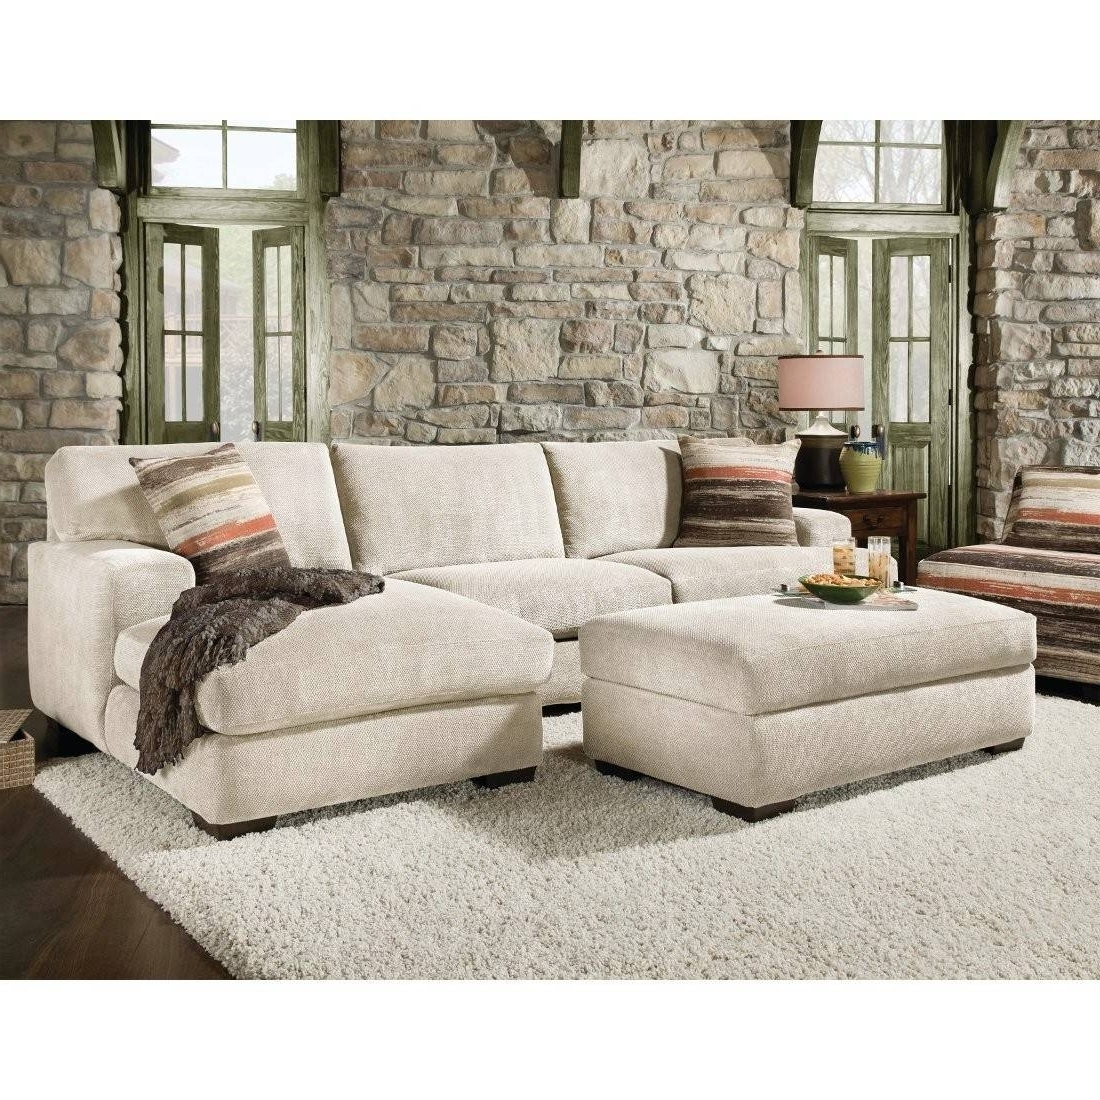 Most Popular Beautiful Down Filled Sectional Sofa 75 For Your Modern Sofa Ideas Intended For Down Filled Sectional Sofas (View 11 of 20)